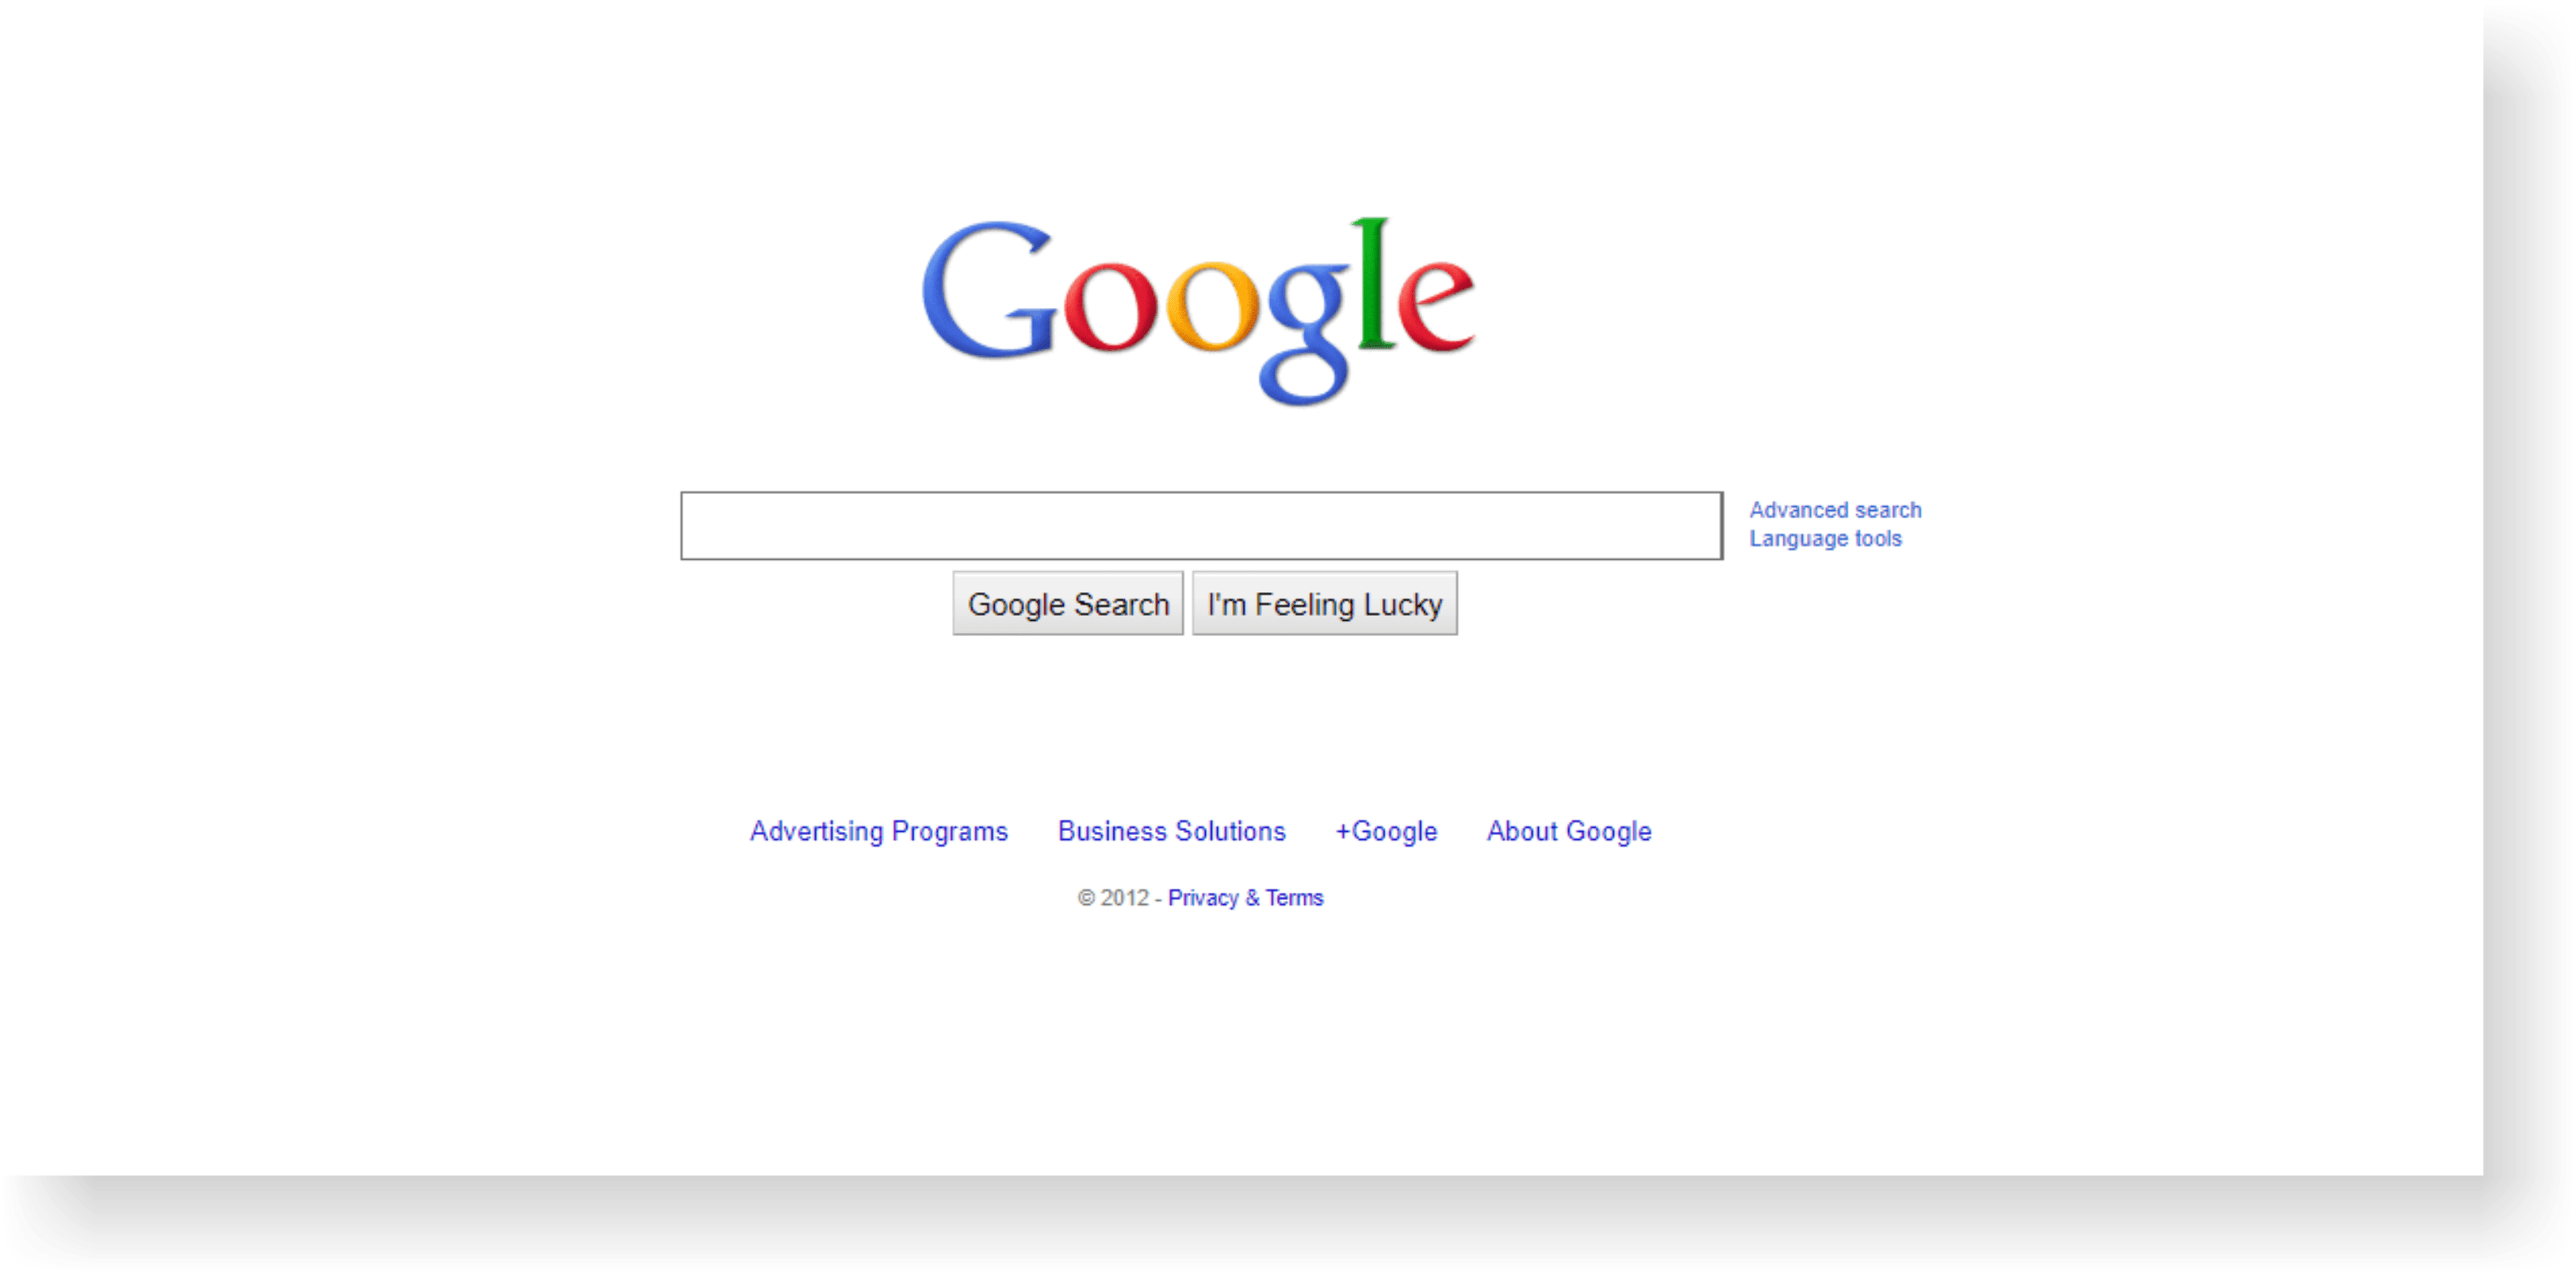 google site history from internet archive on 2012